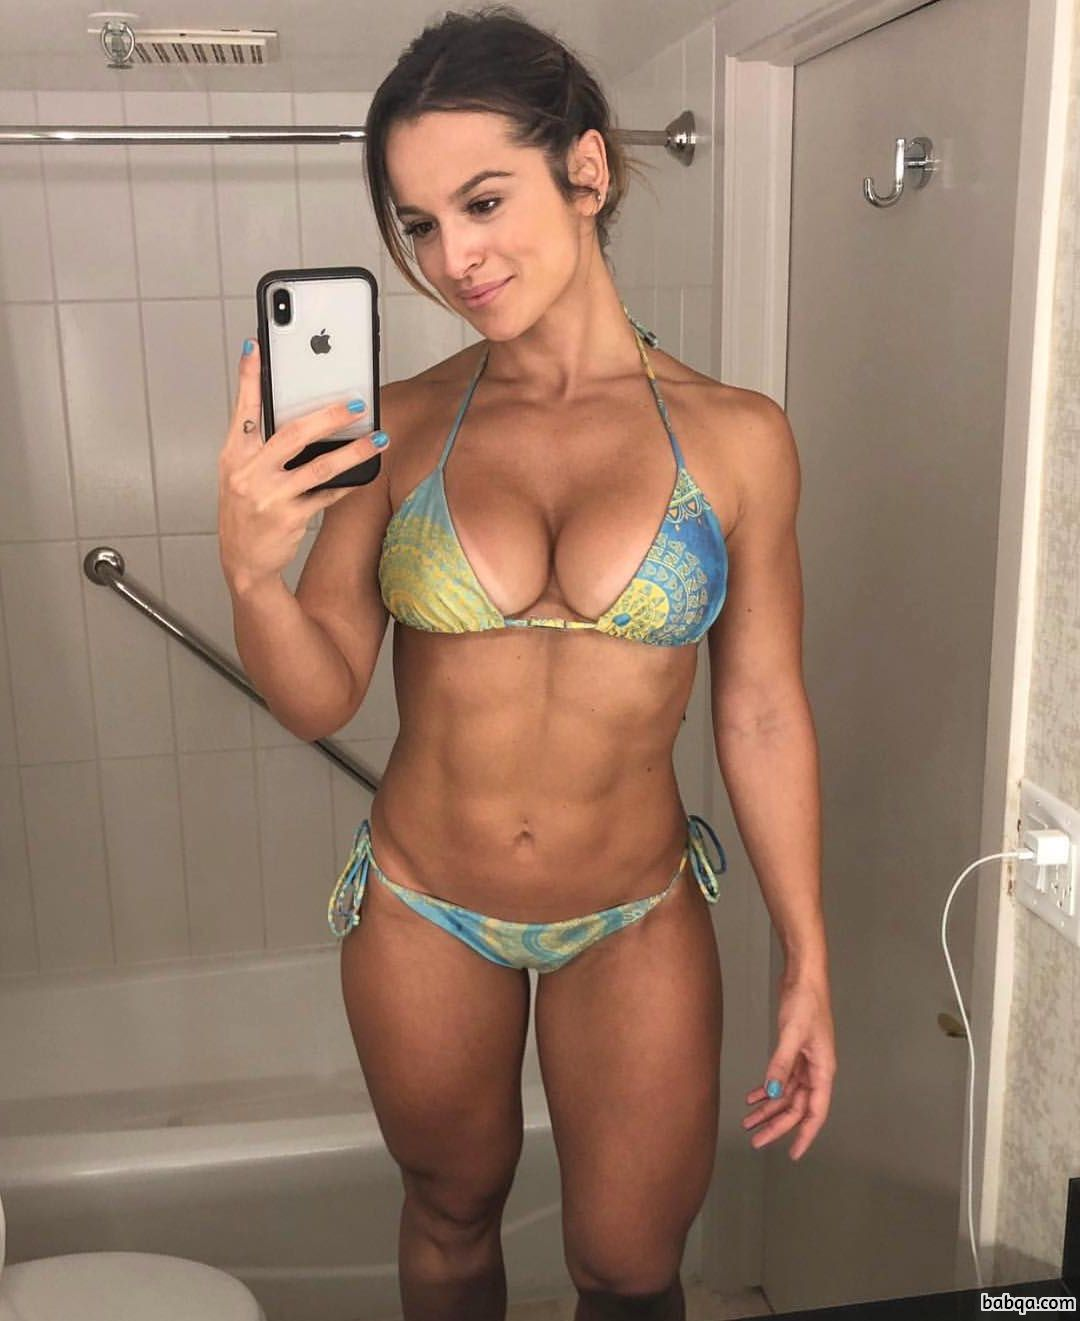 reddit muscle repost from femalesphysiques – hot girl with boobes